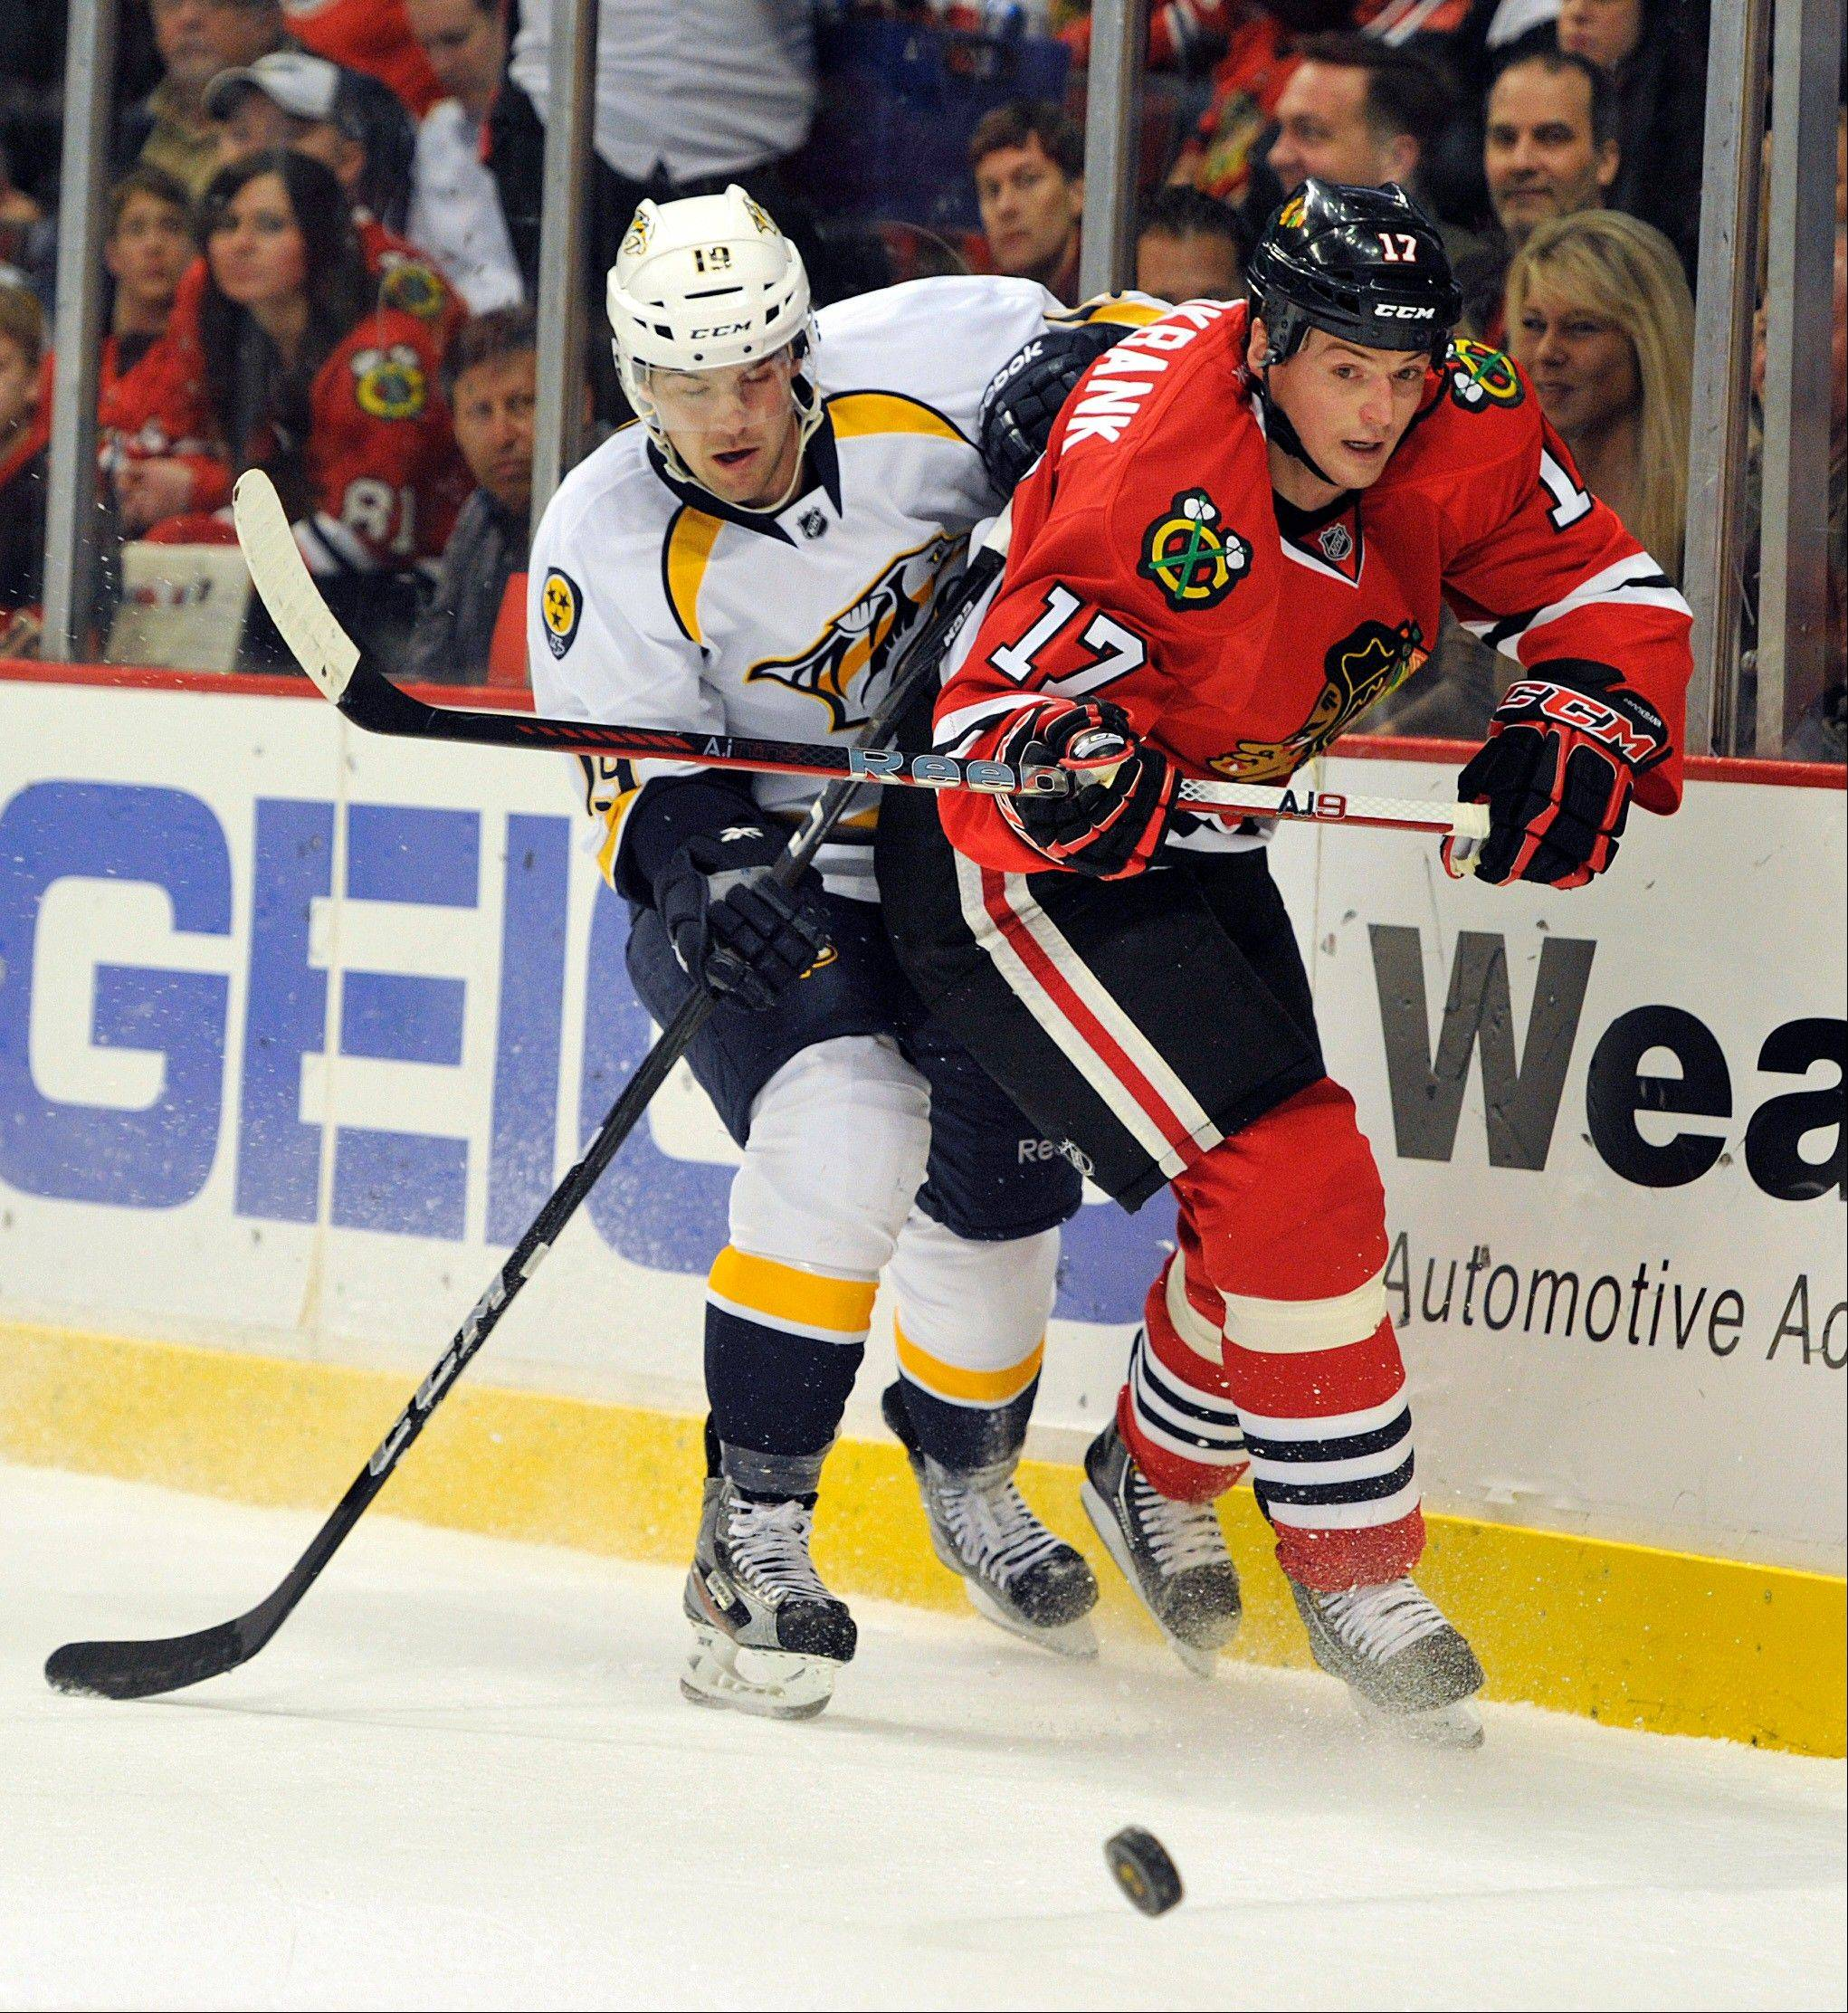 Nashville Predators' Bobby Butler left and the Chicago Blackhawks' Sheldon Brookbank (17) scramble for control of the puck during the first period of an NHL Hockey game Friday, April 19, 2013, in Chicago.